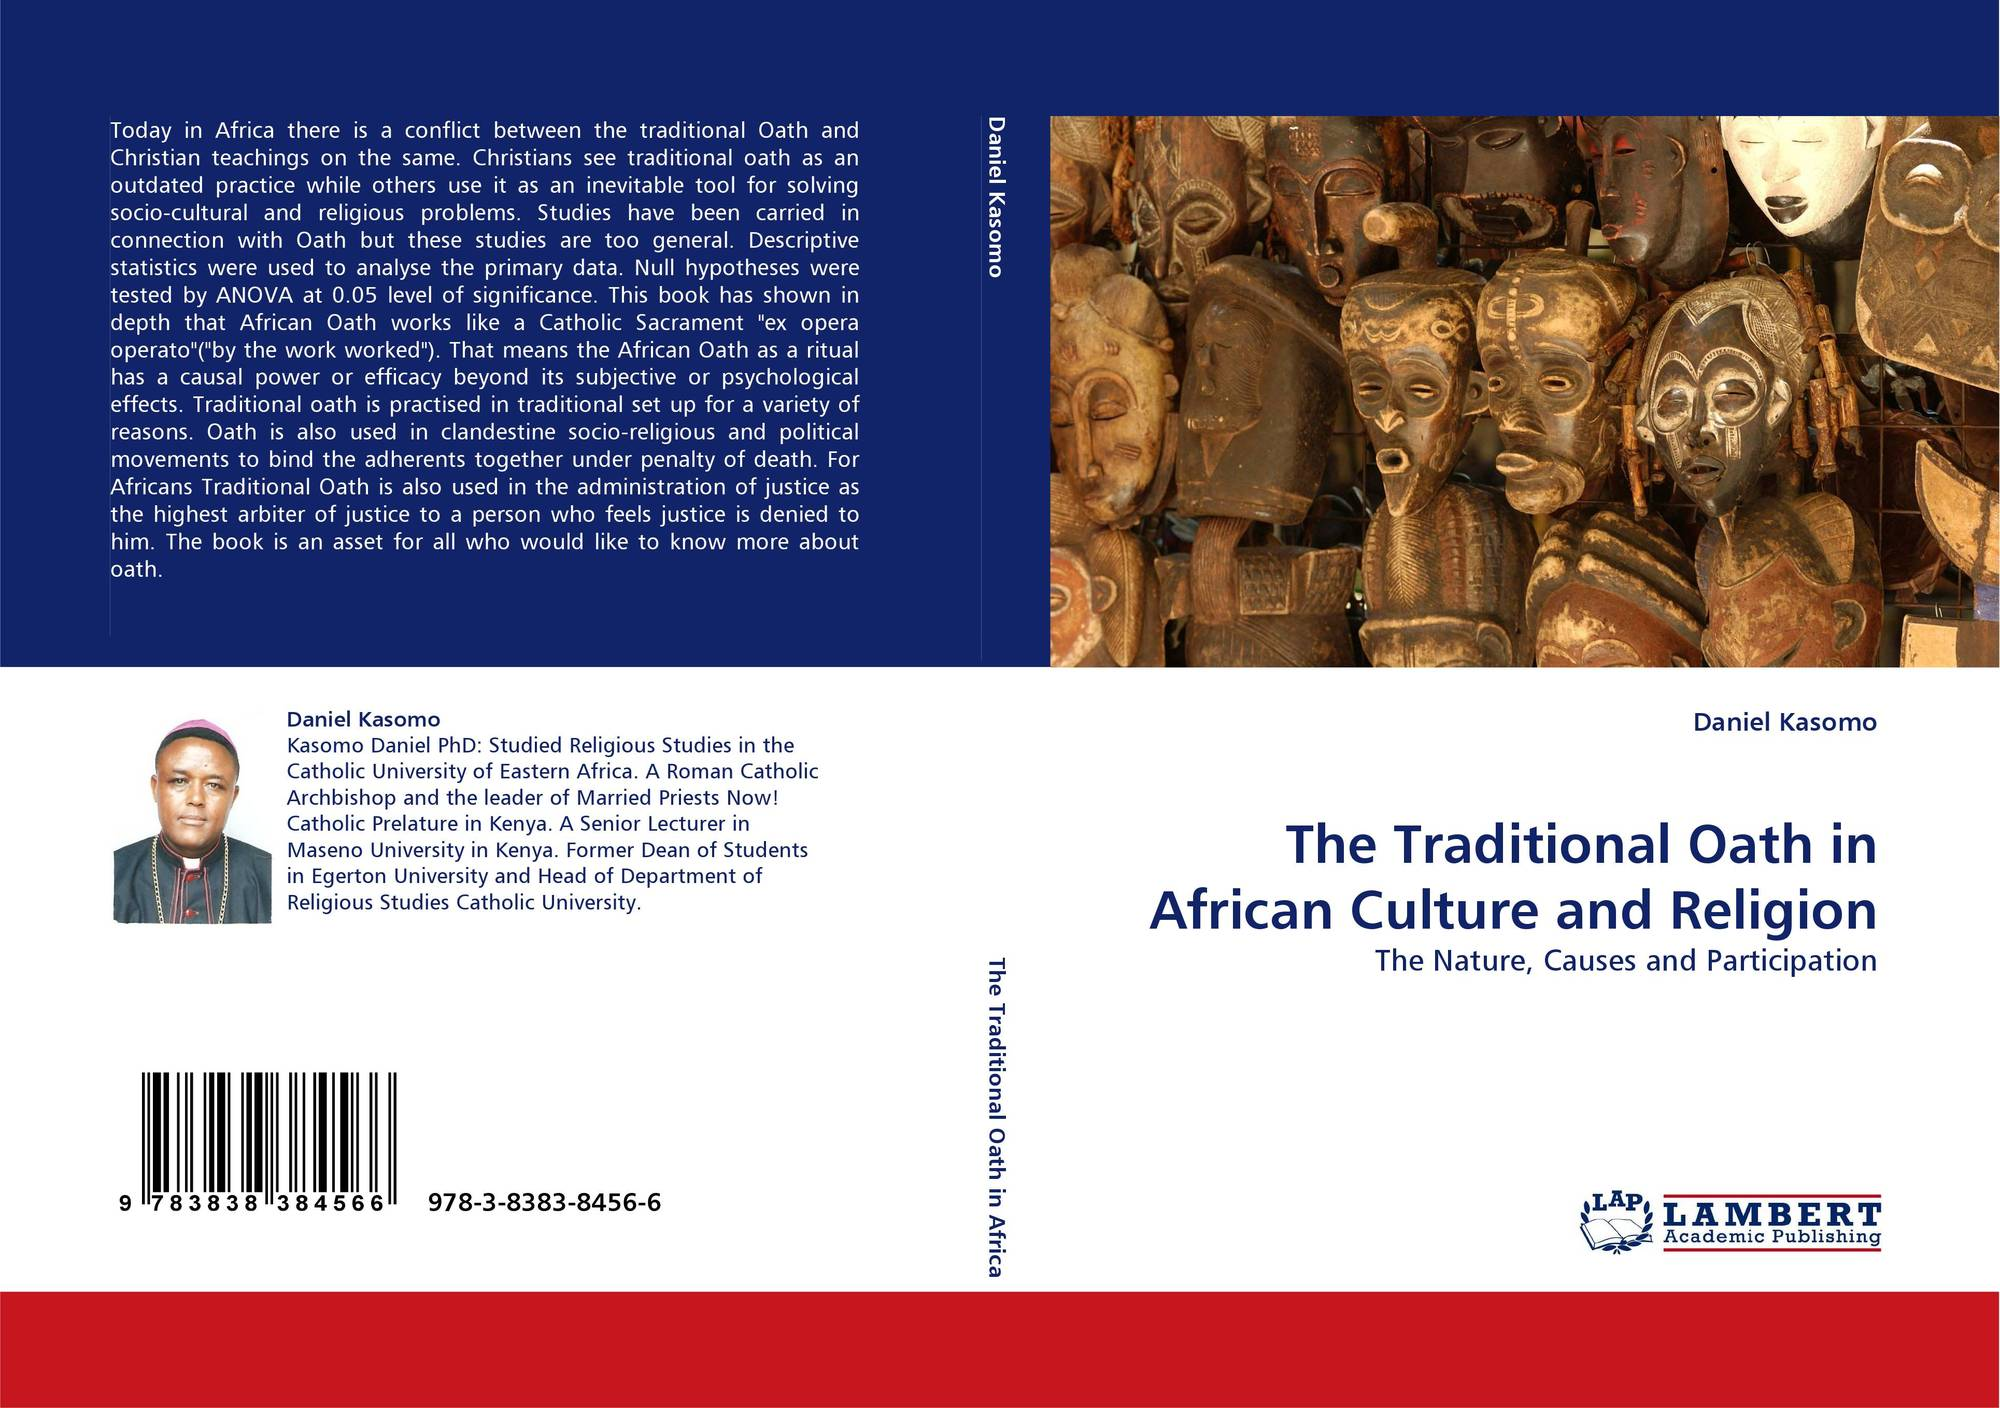 religion and peace in african culture Culture of peace initiative a culture of peace social and cultural council of the africa union on interfaith, inter-religions and inter-cultural issuehe.